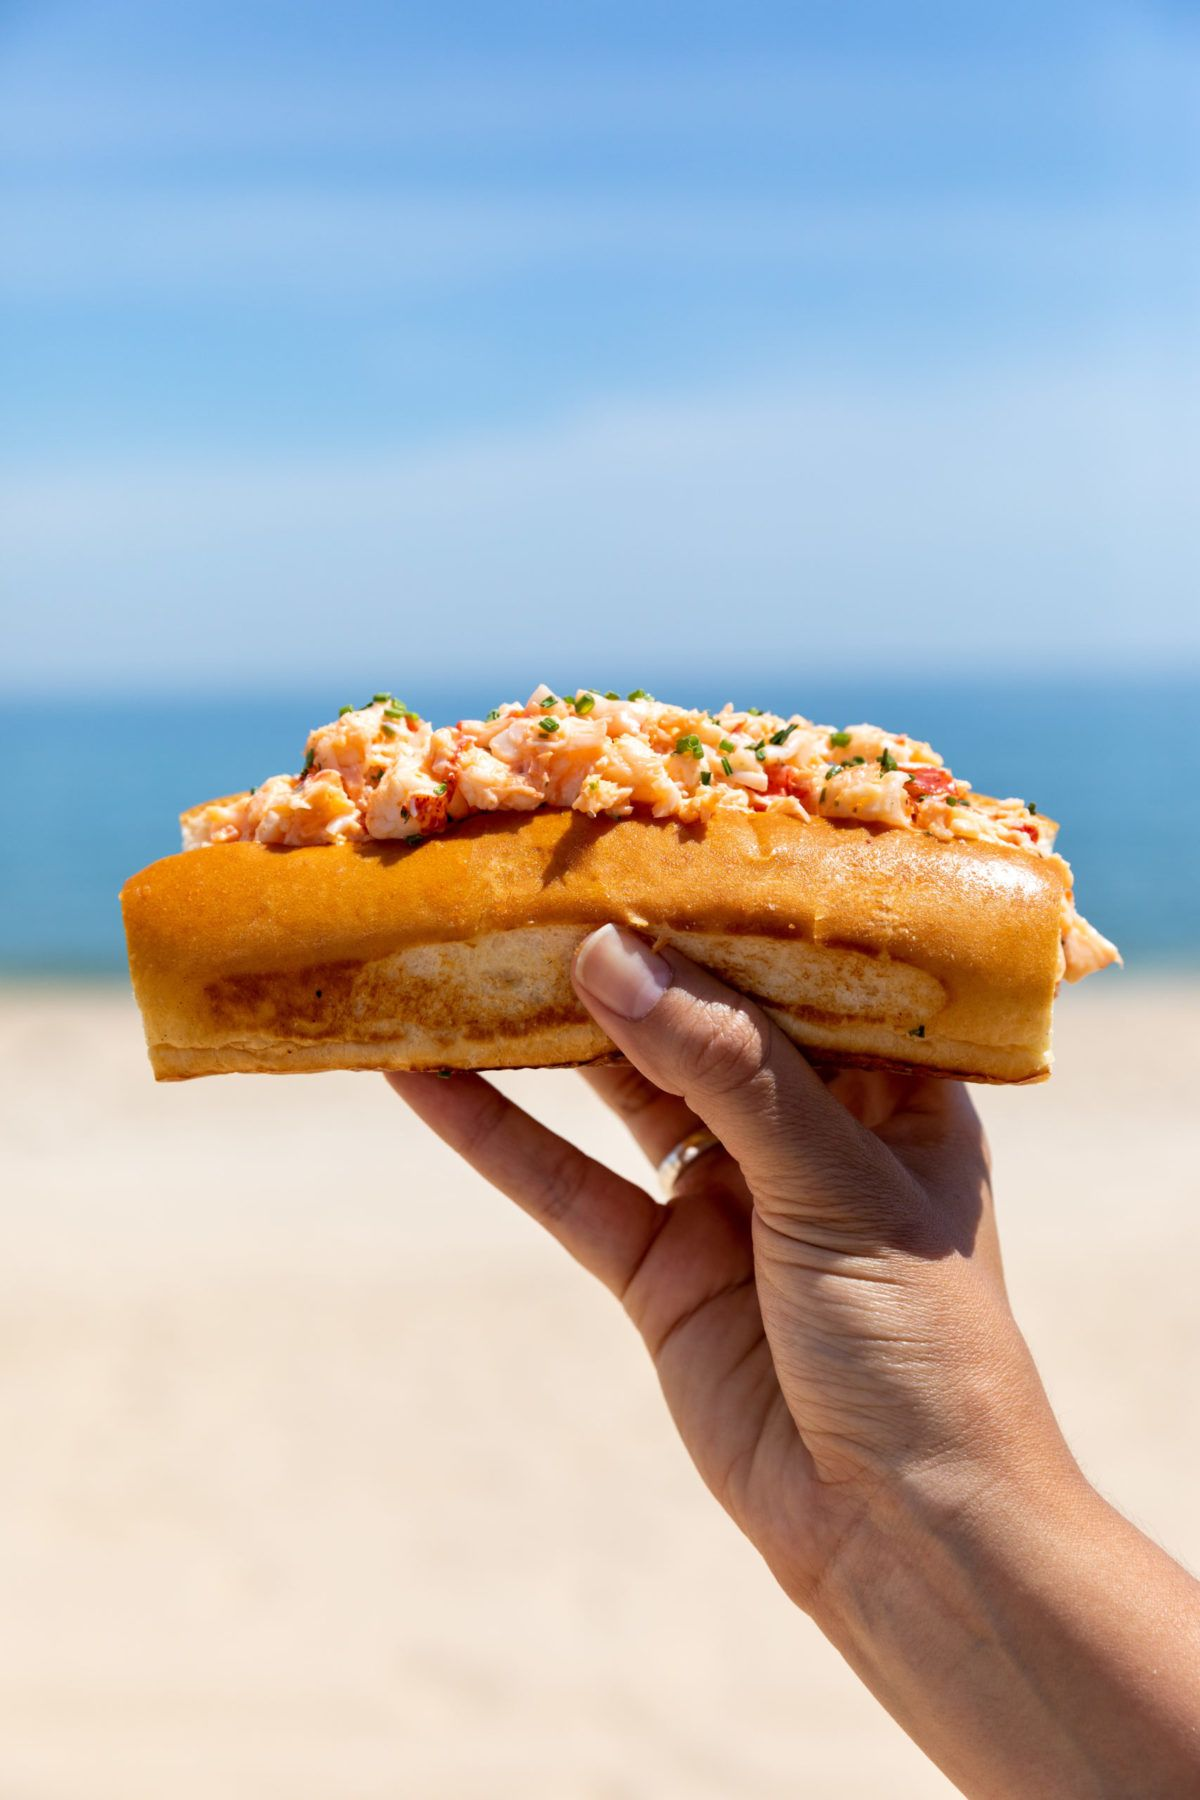 Hand holding up a lobster role with ocean background